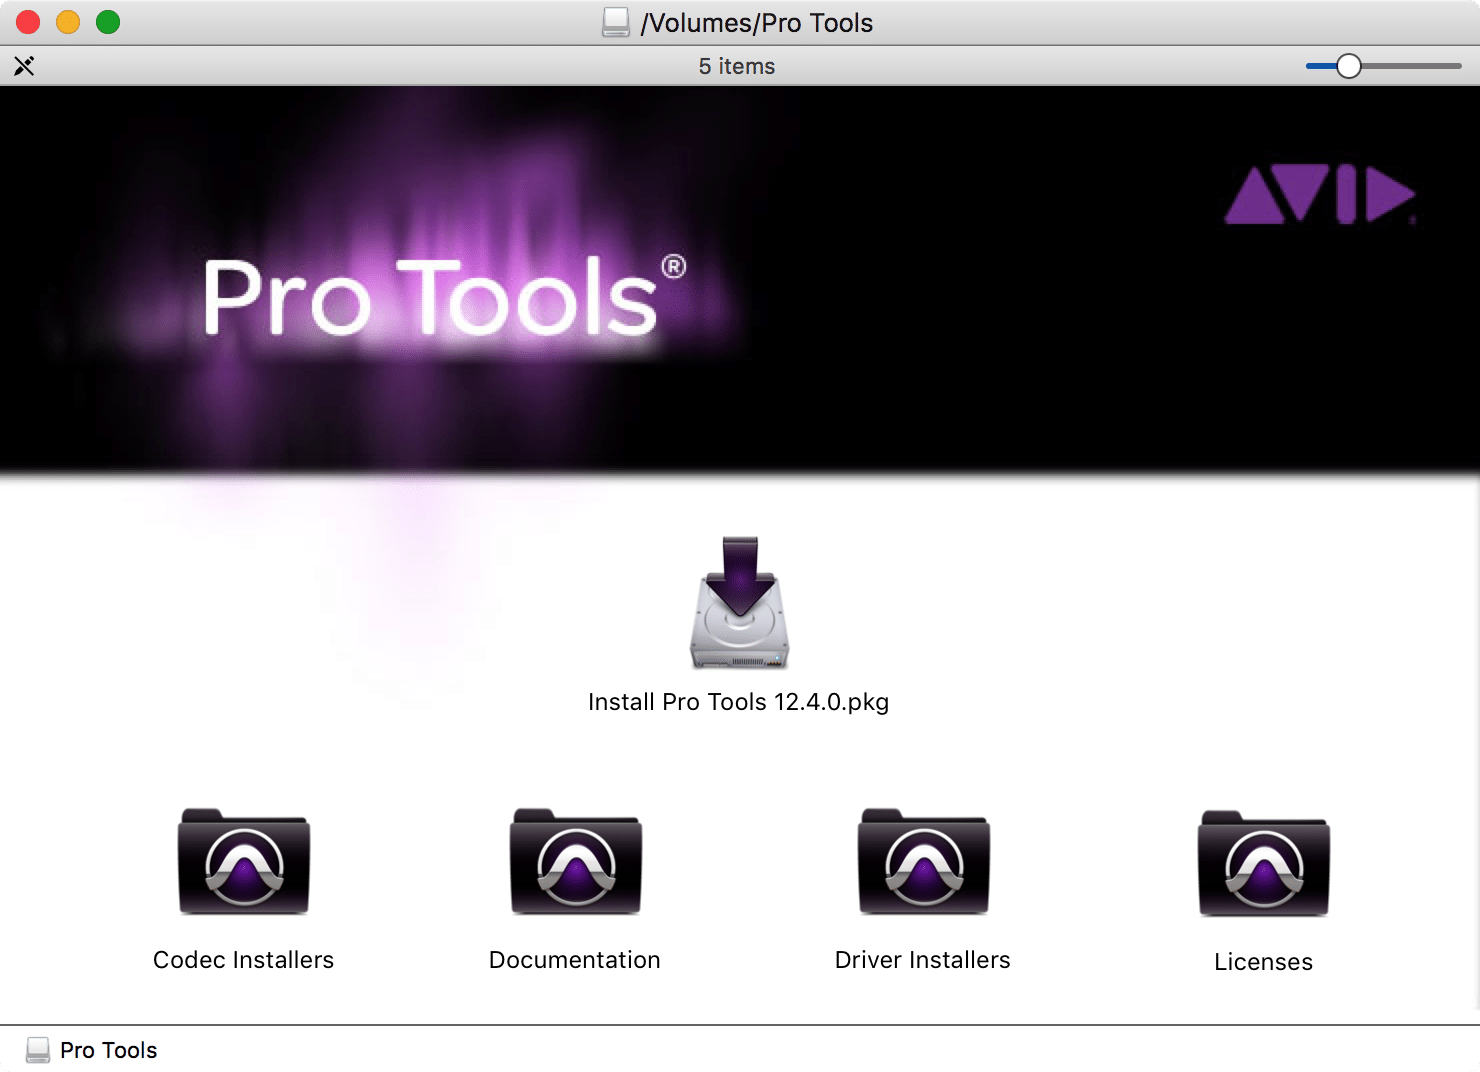 Packaging Pro Tools 12 for deployment